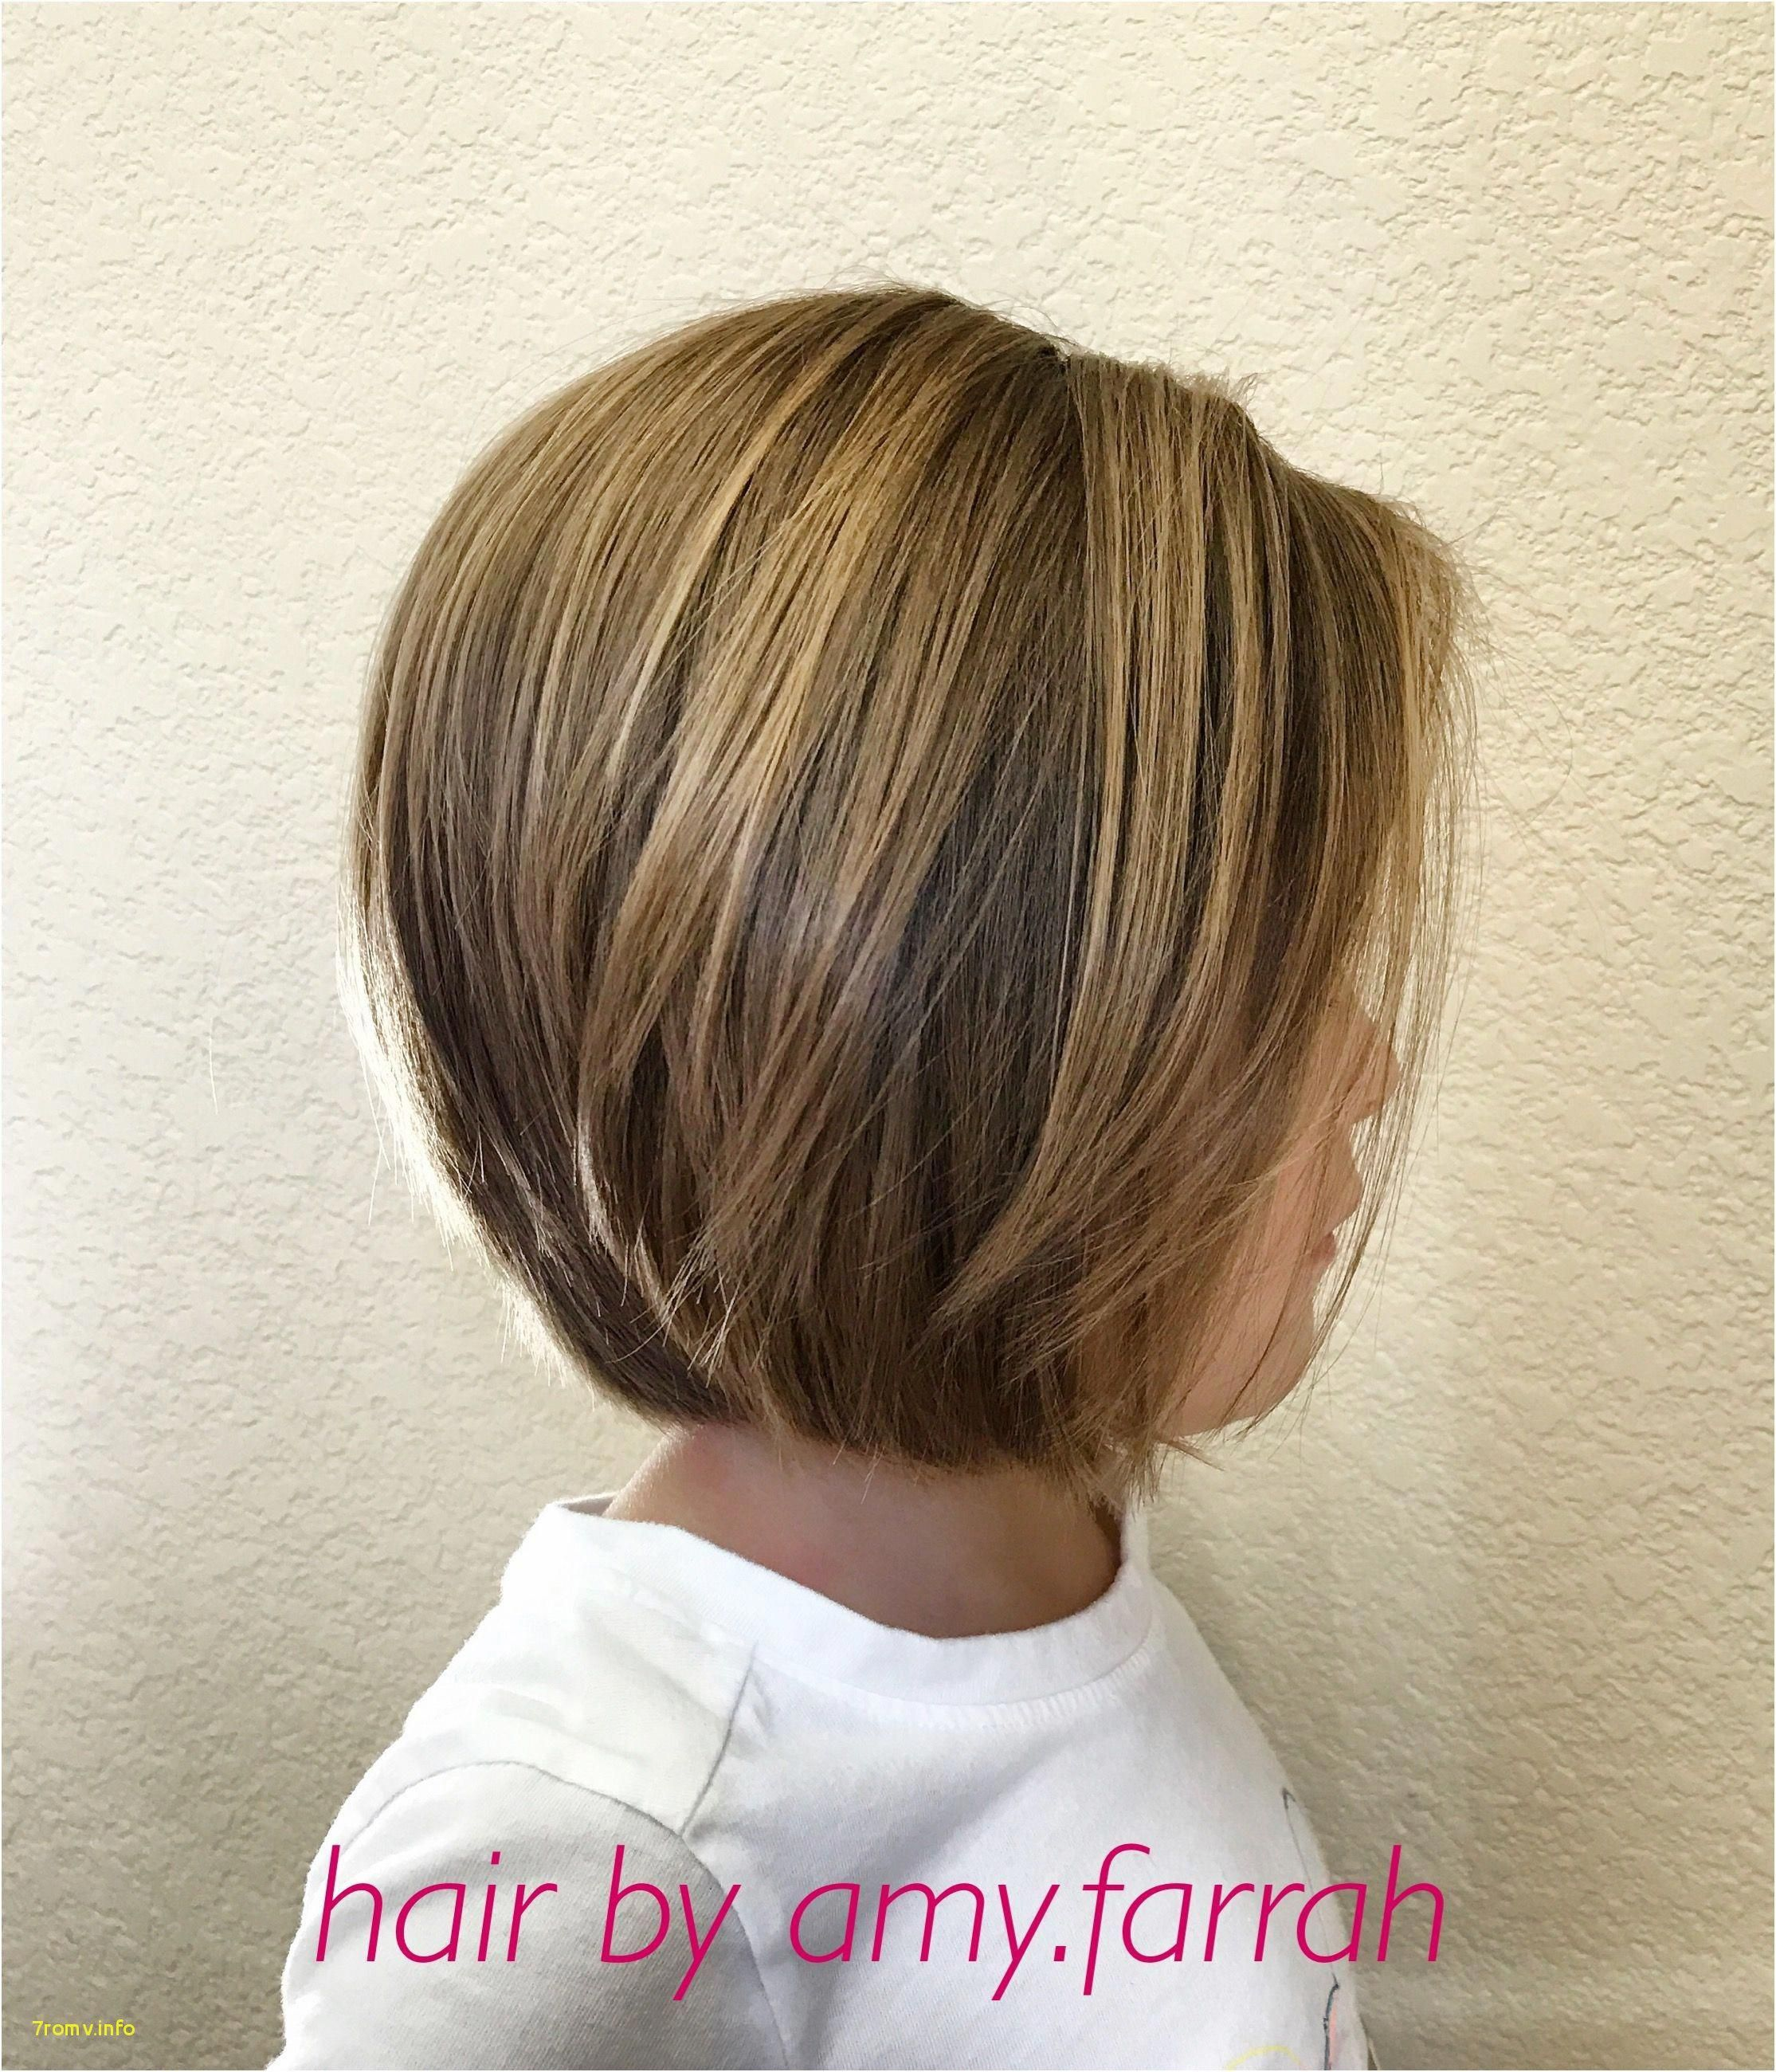 Little Girls Hair Up Easy Hairstyles For Kids With Medium Hair Easy Hairstyles Little Gi Little Girl Bob Haircut Bob Haircut For Girls Little Girl Haircuts